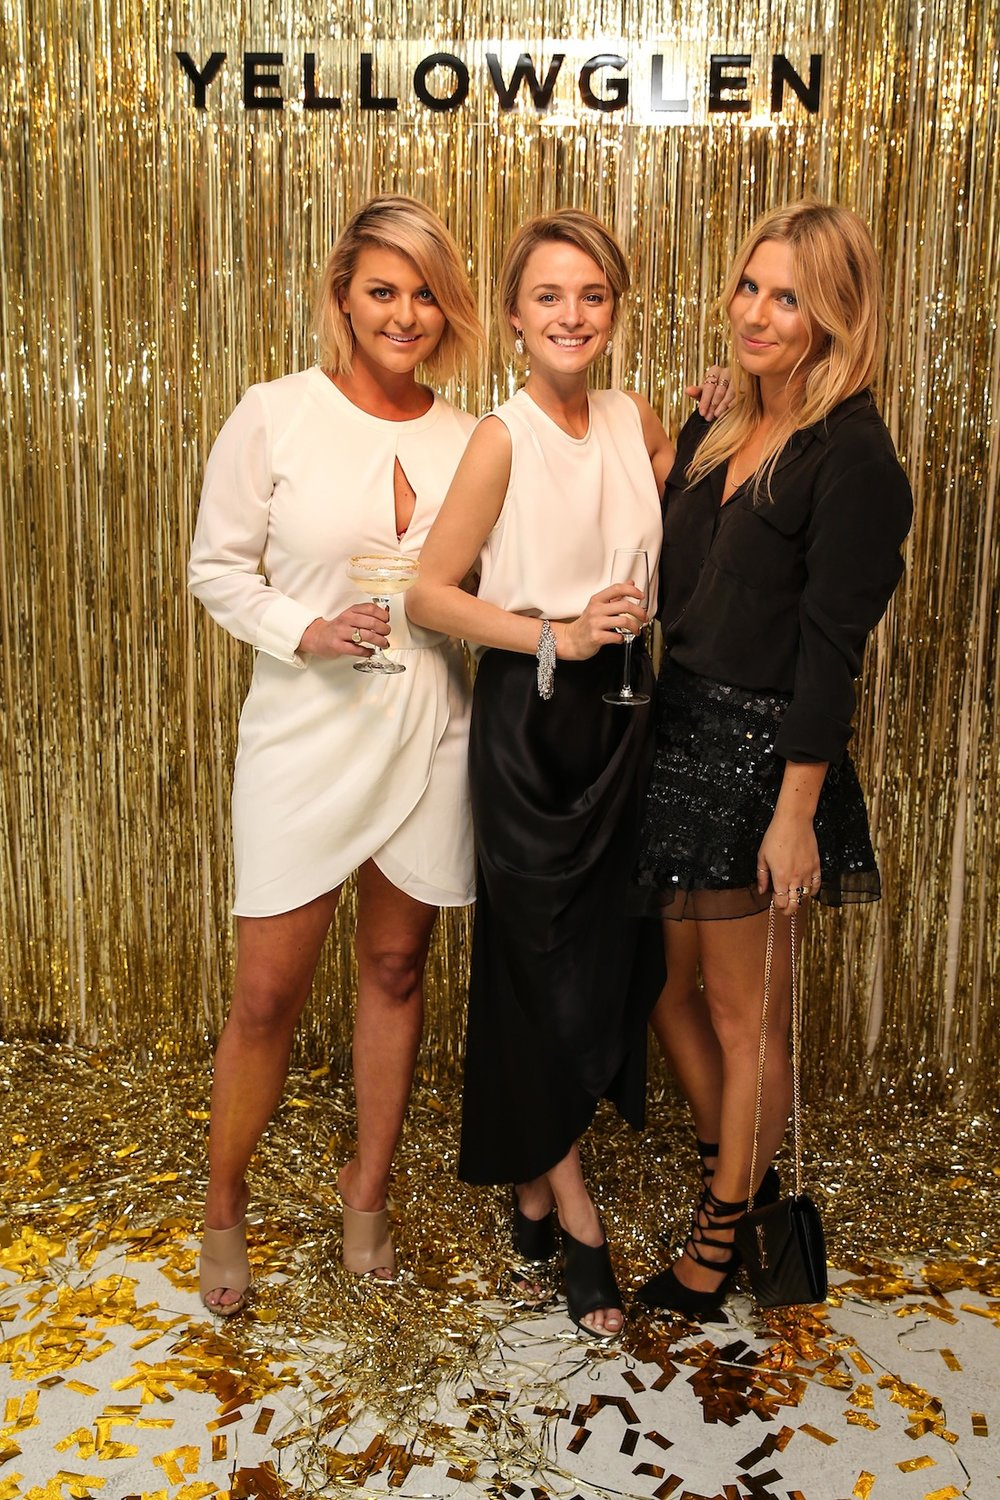 yellowglen-sparkle-launch-emma-clapham-nadia-fairfax-lisa-hamilton.jpg